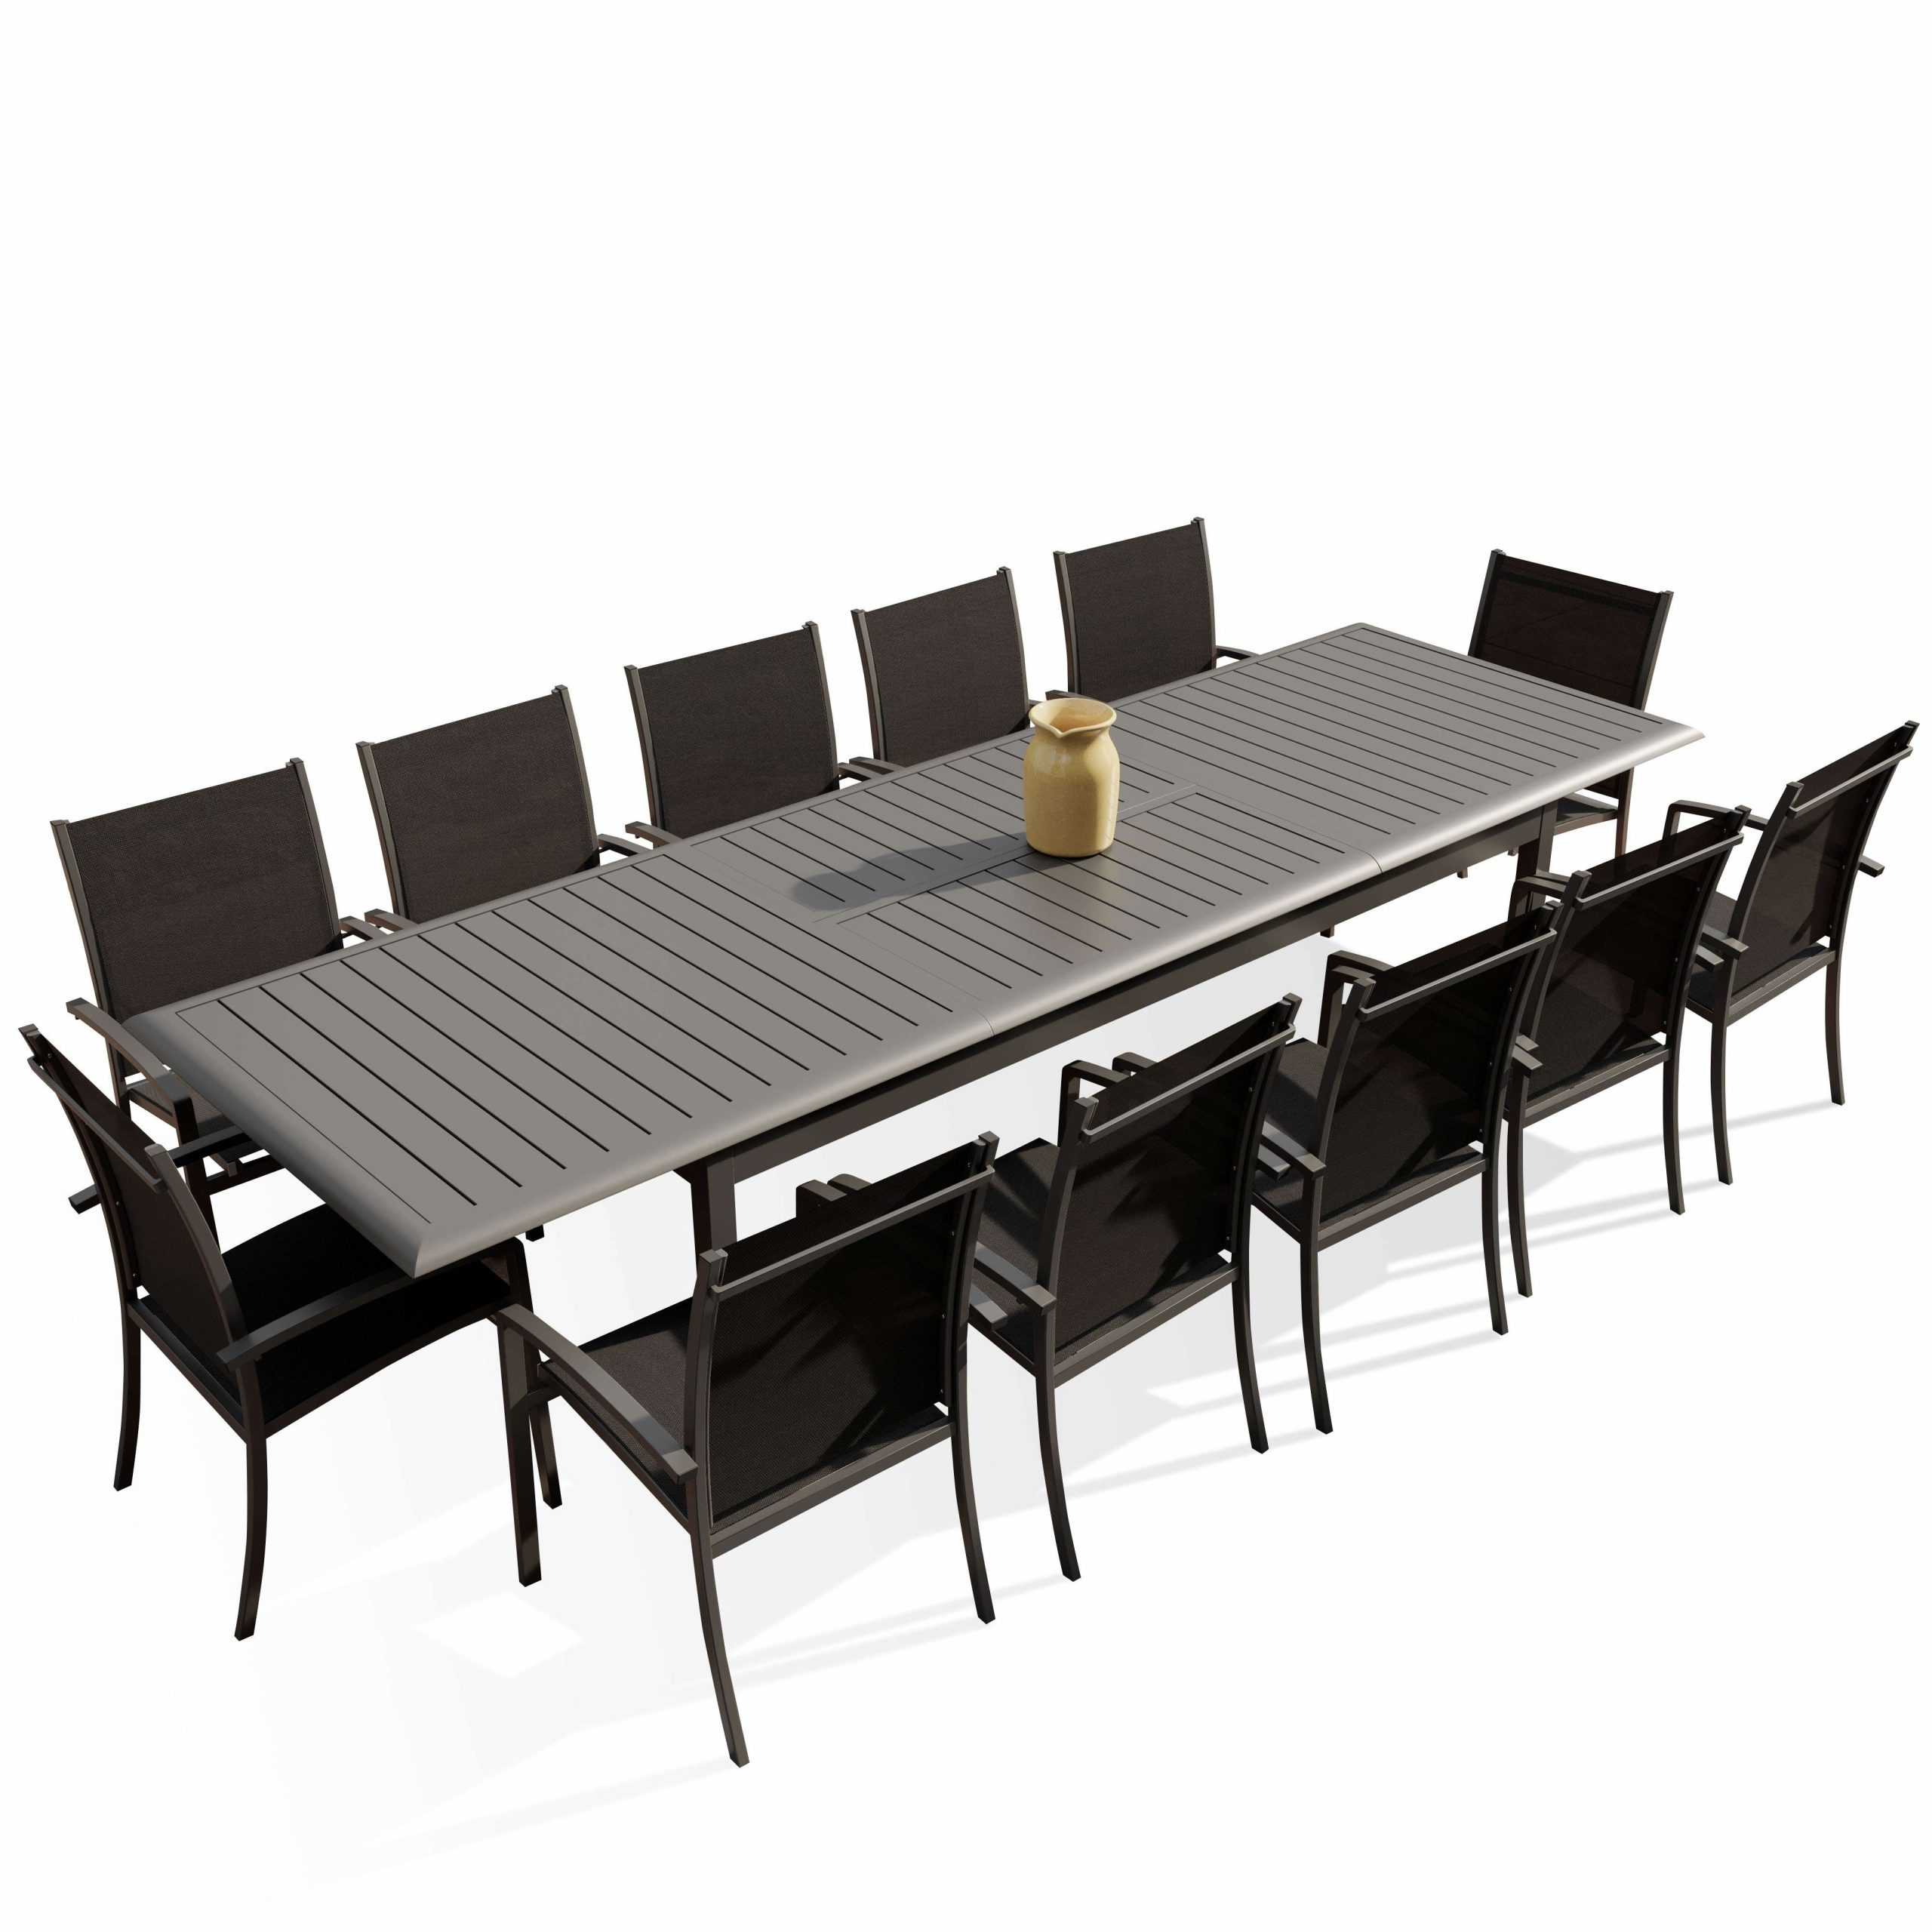 Table De Jardin Extensible Alu 220/320 Cm + 12 Fauteuils Empilables  Textilène Anthracite Andra Xl serapportantà Table De Jardin Extensible 320 Cm